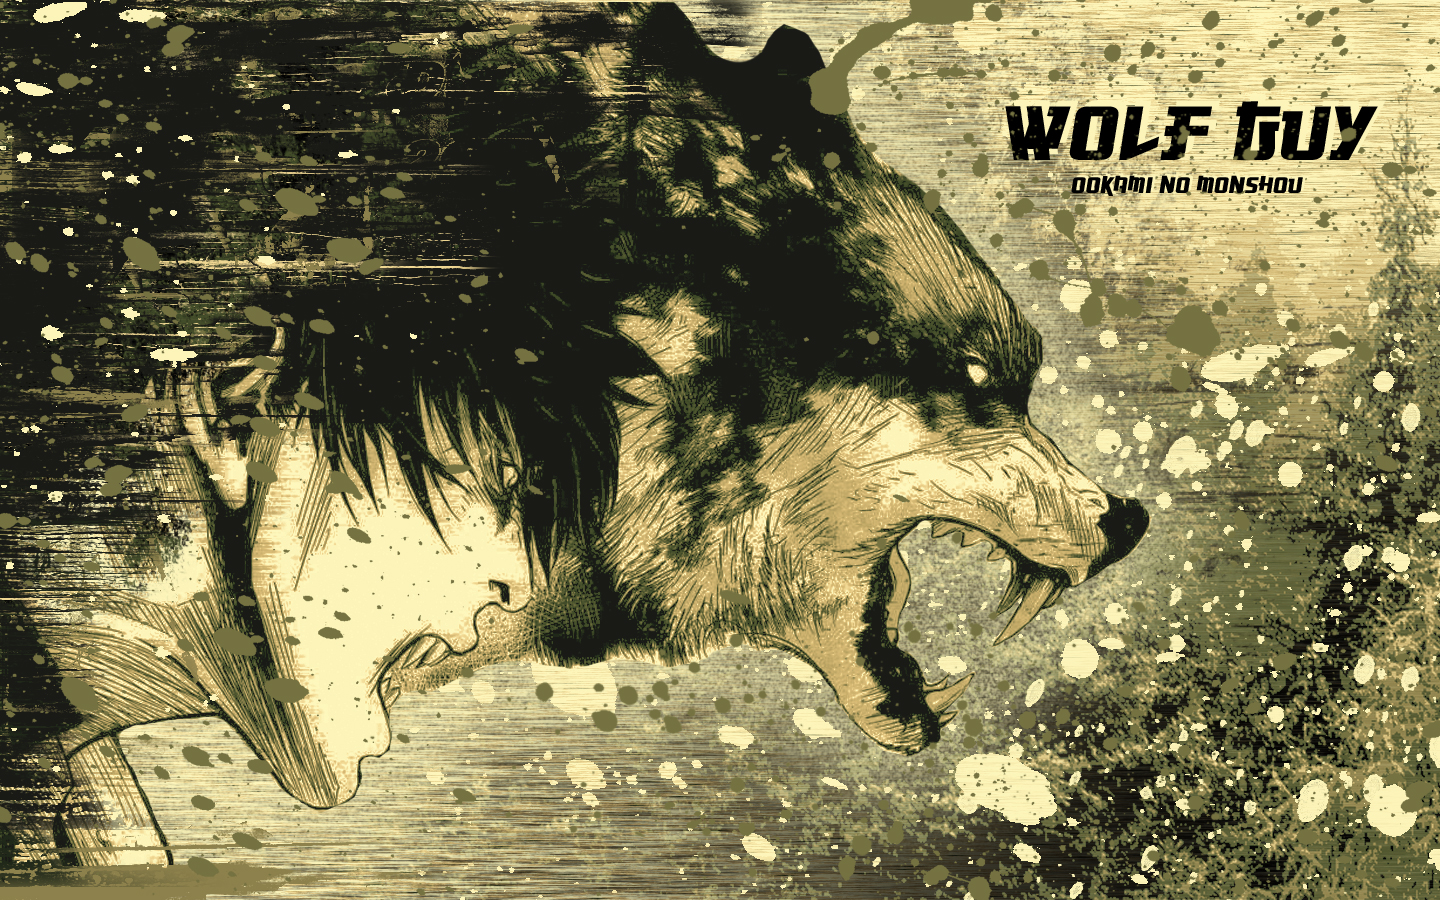 http://fc05.deviantart.net/fs71/f/2010/103/0/2/Wolf_Guy_Green_Cream_WP_by_Hallucination_Walker.jpg